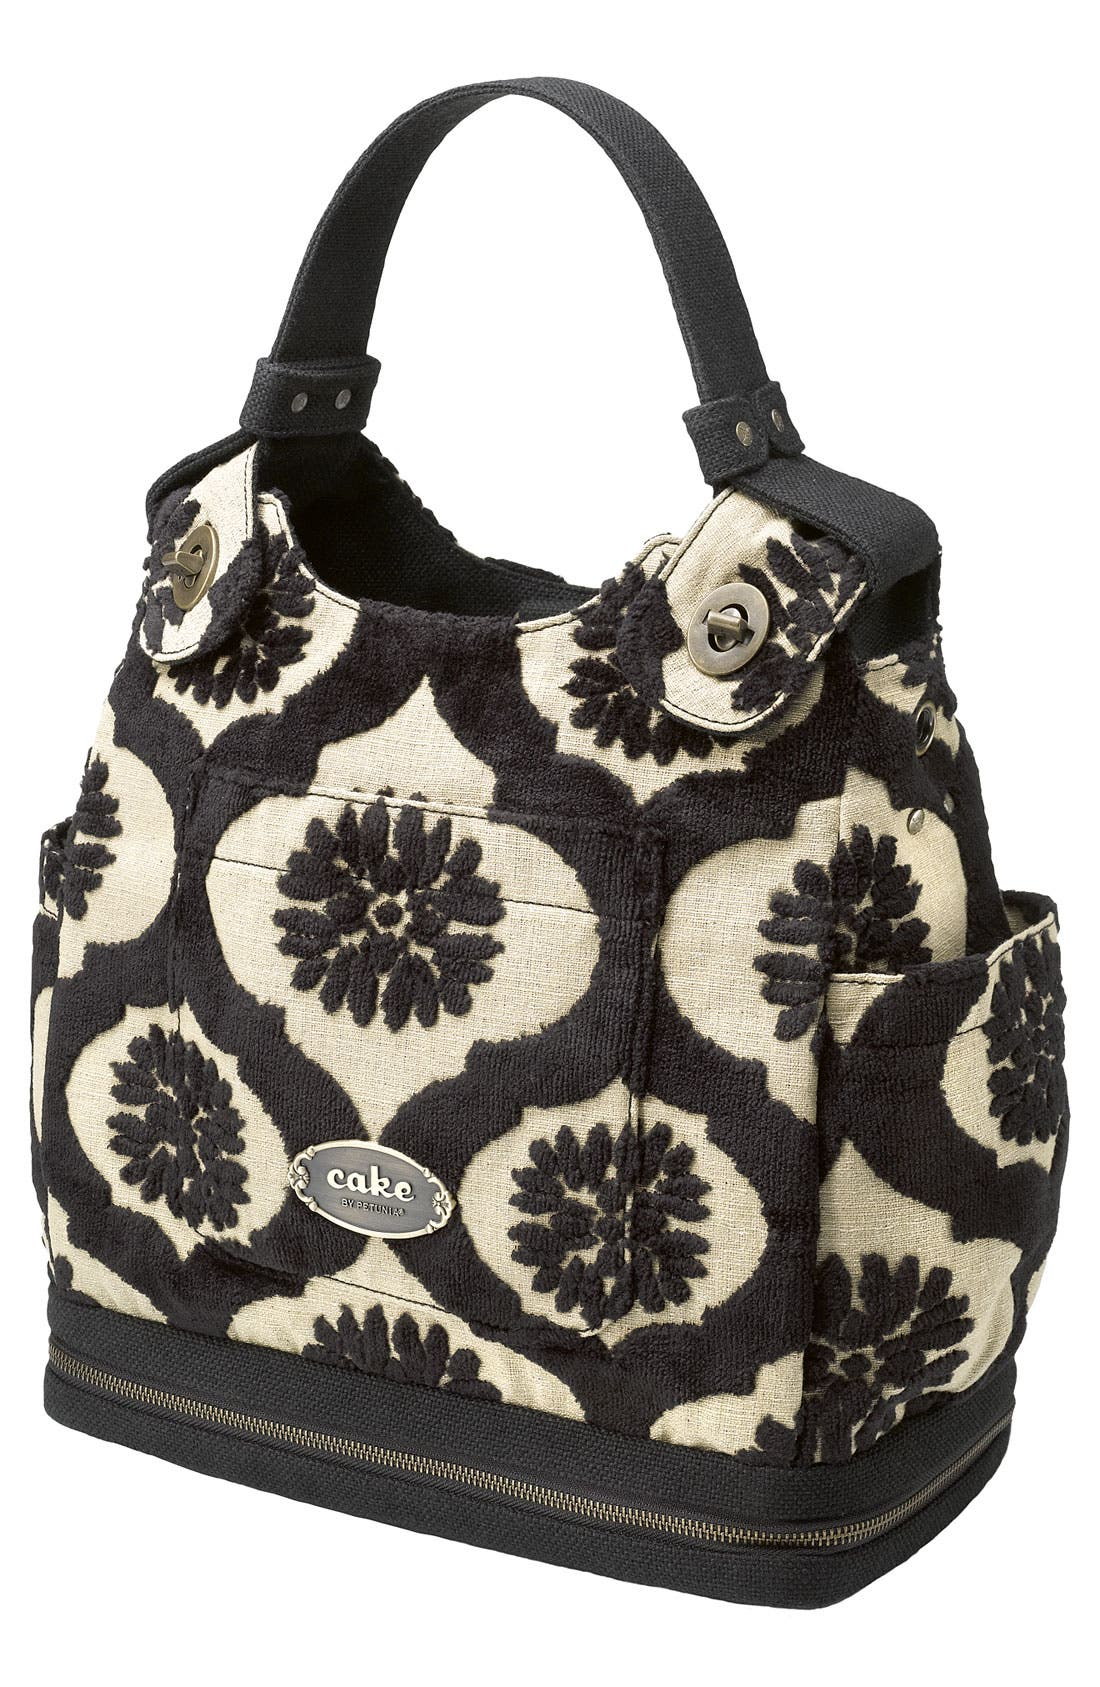 Main Image - Petunia Pickle Bottom 'Cake Society' Convertible Baby Bag